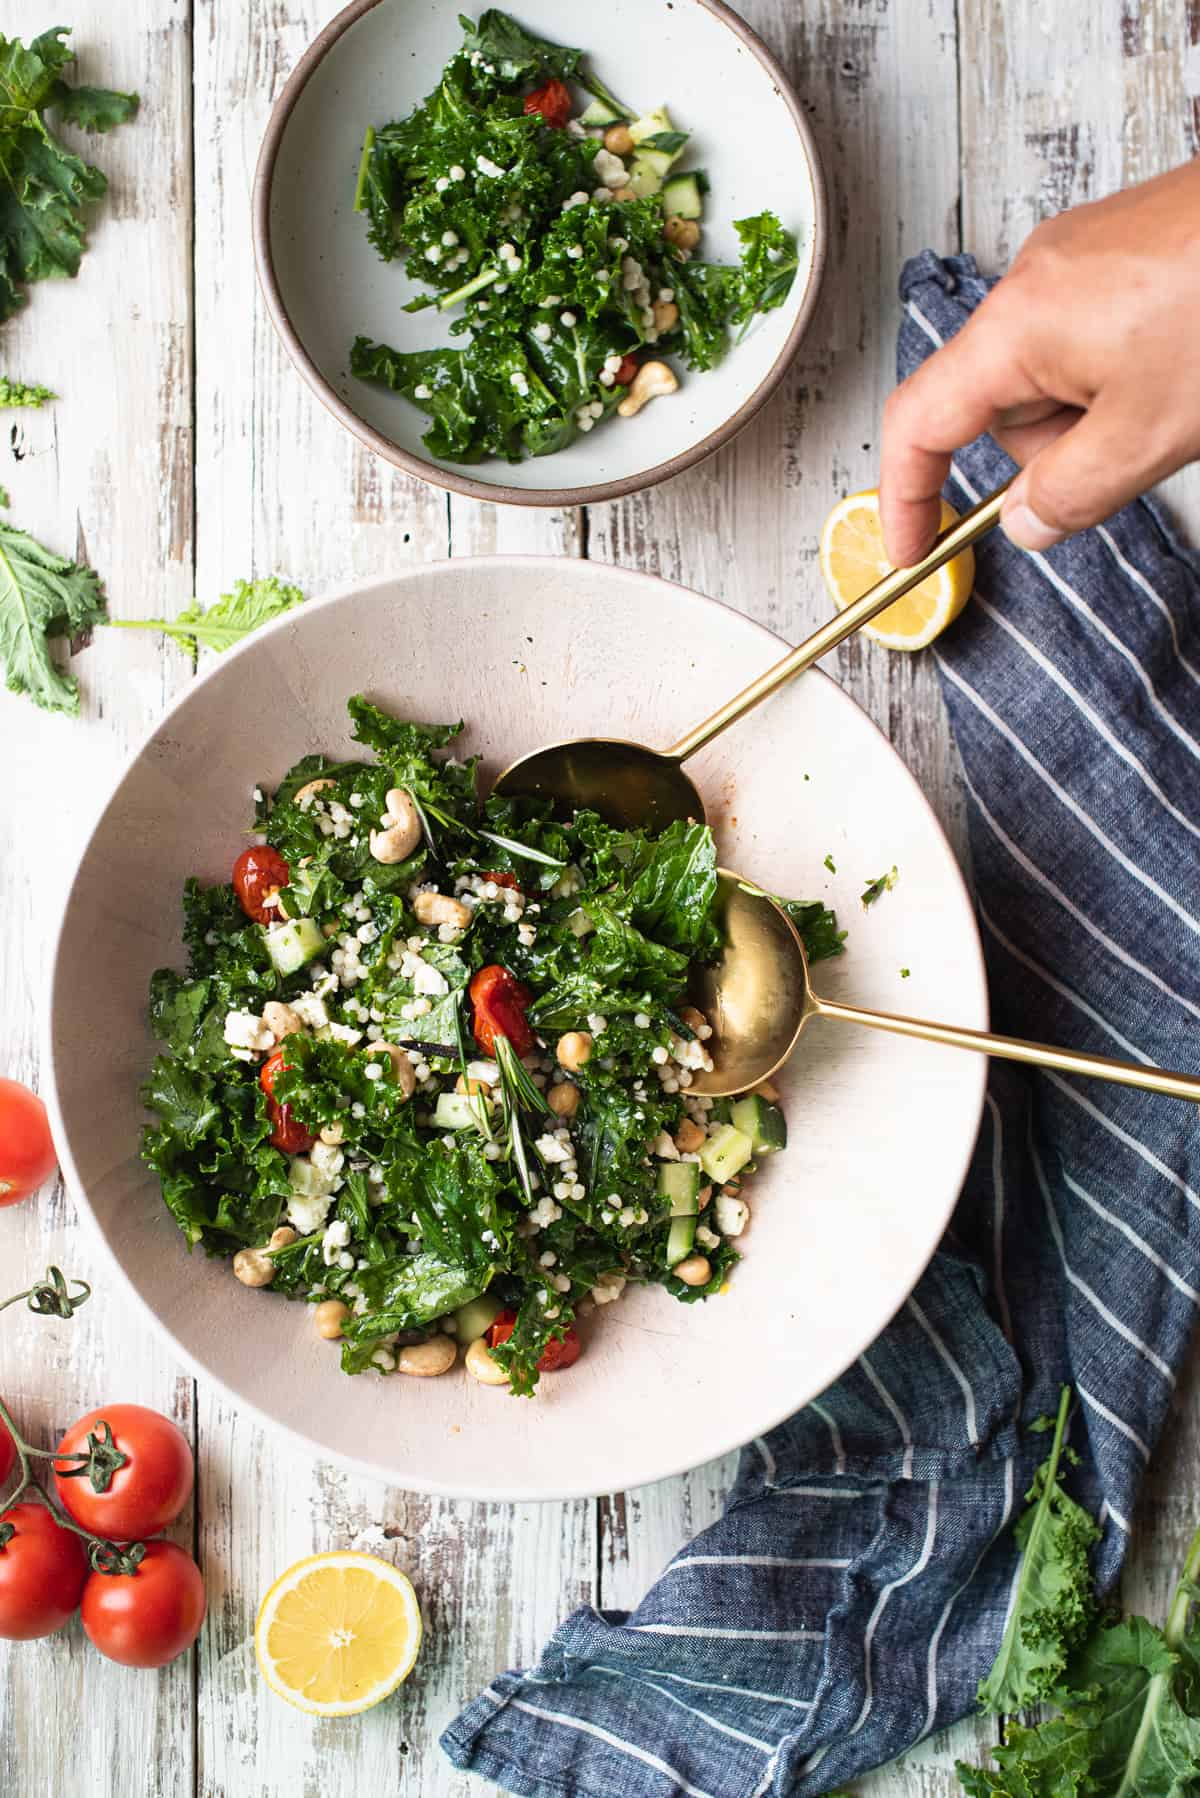 hands serving salad in wooden bowl with blue striped napkin